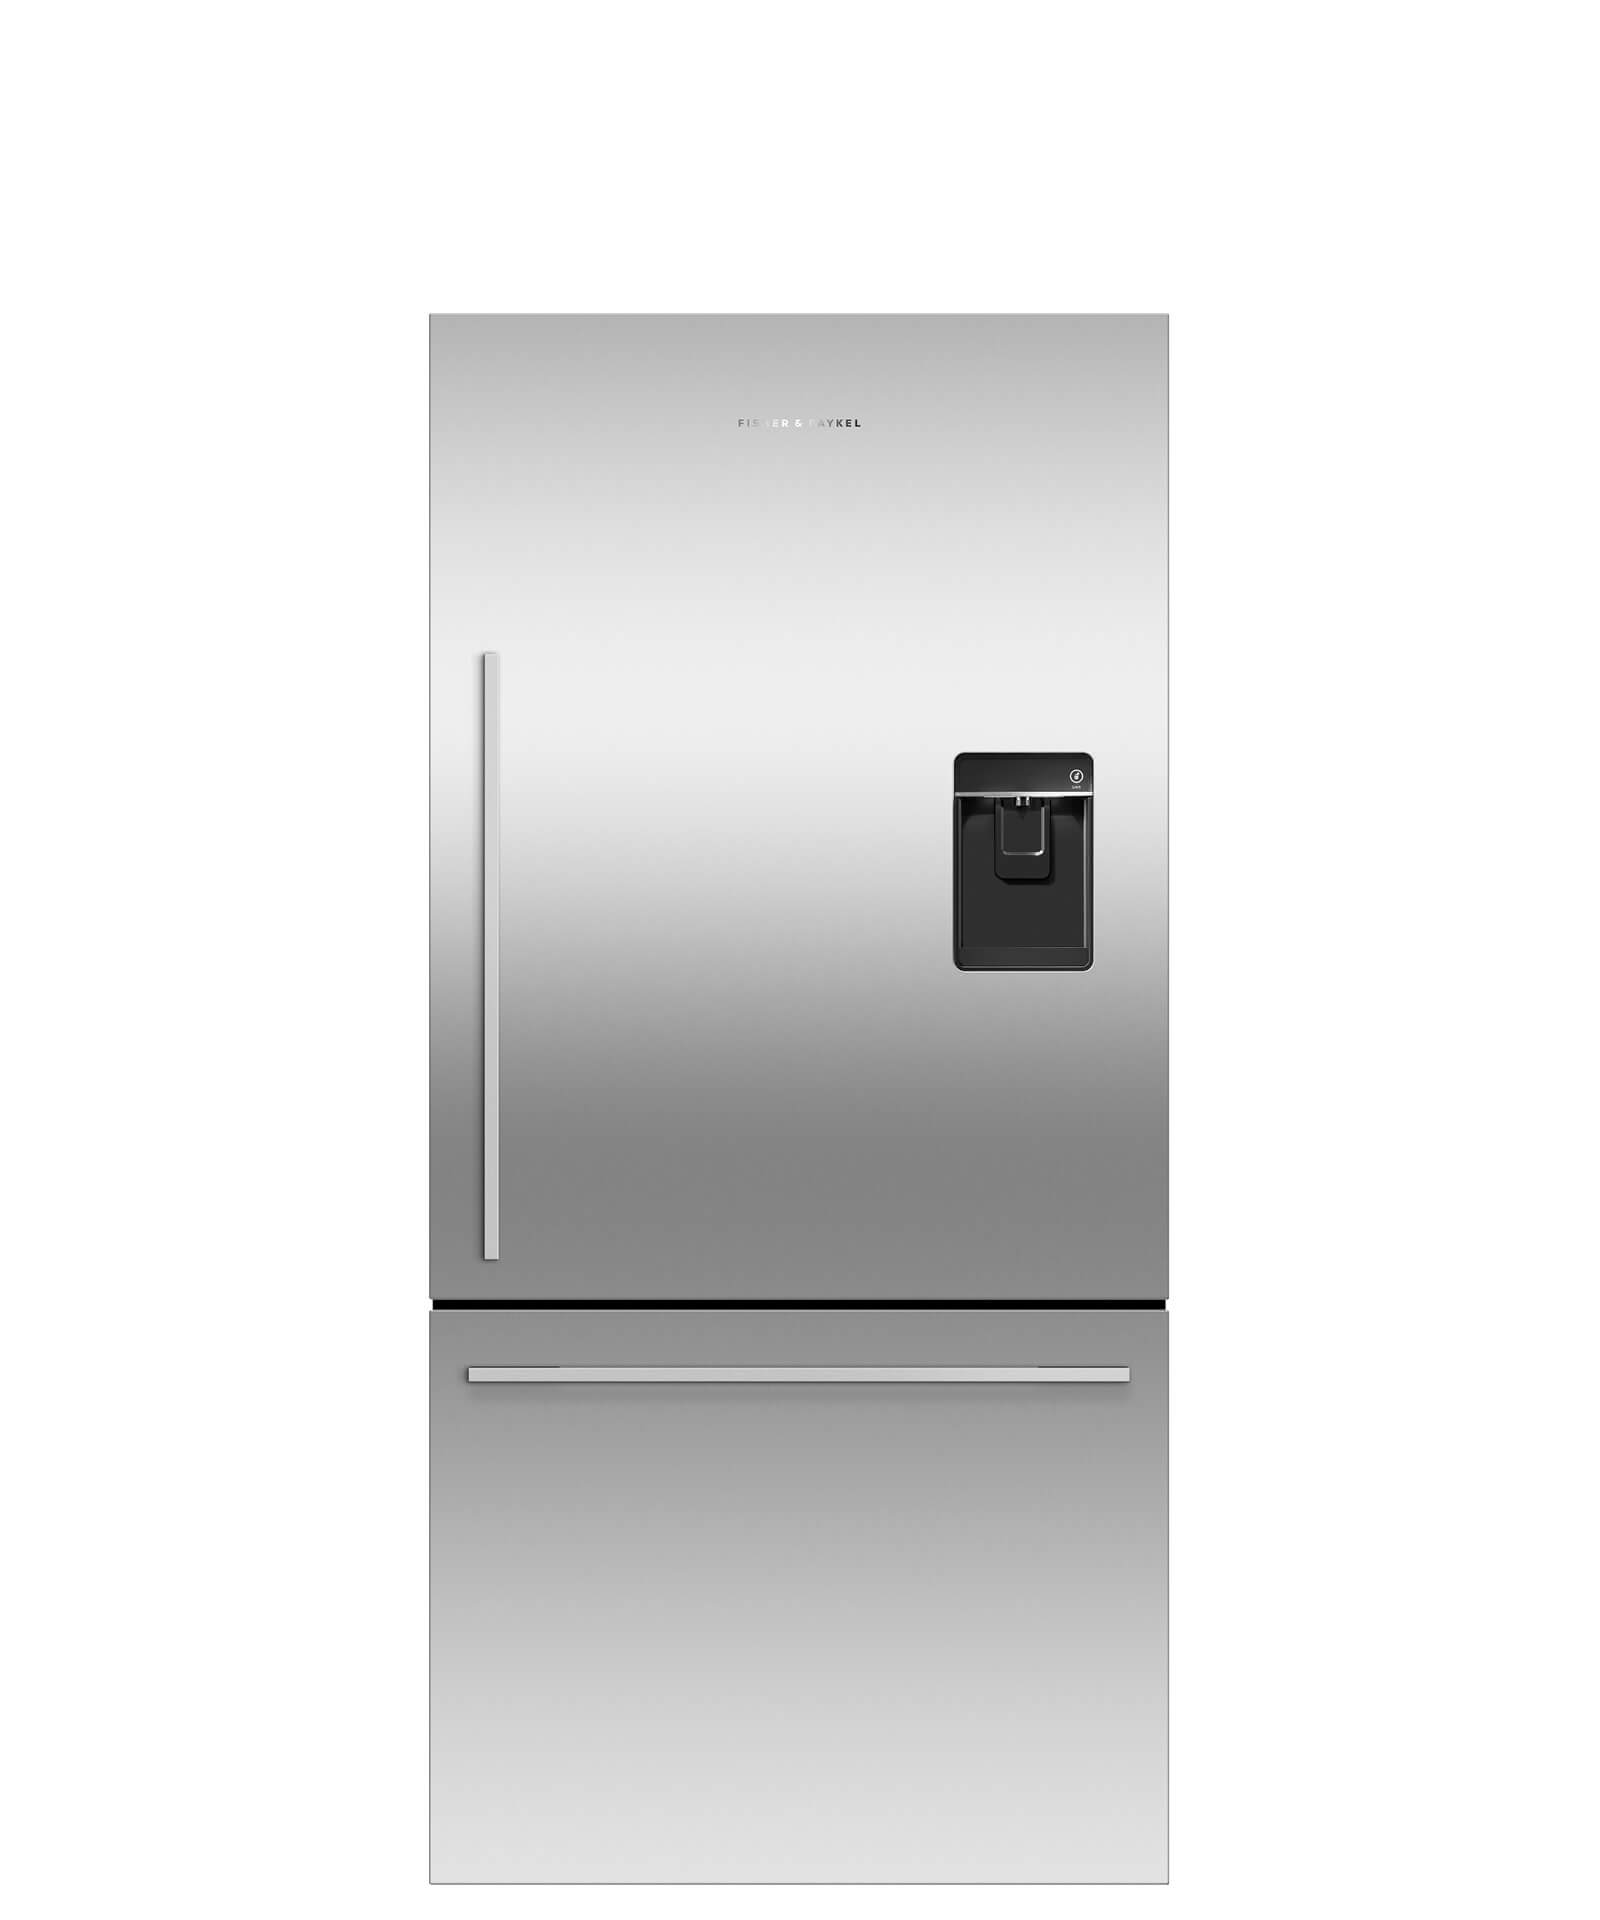 Fisher and Paykel Counter Depth Refrigerator 17 cu ft, Ice & Water